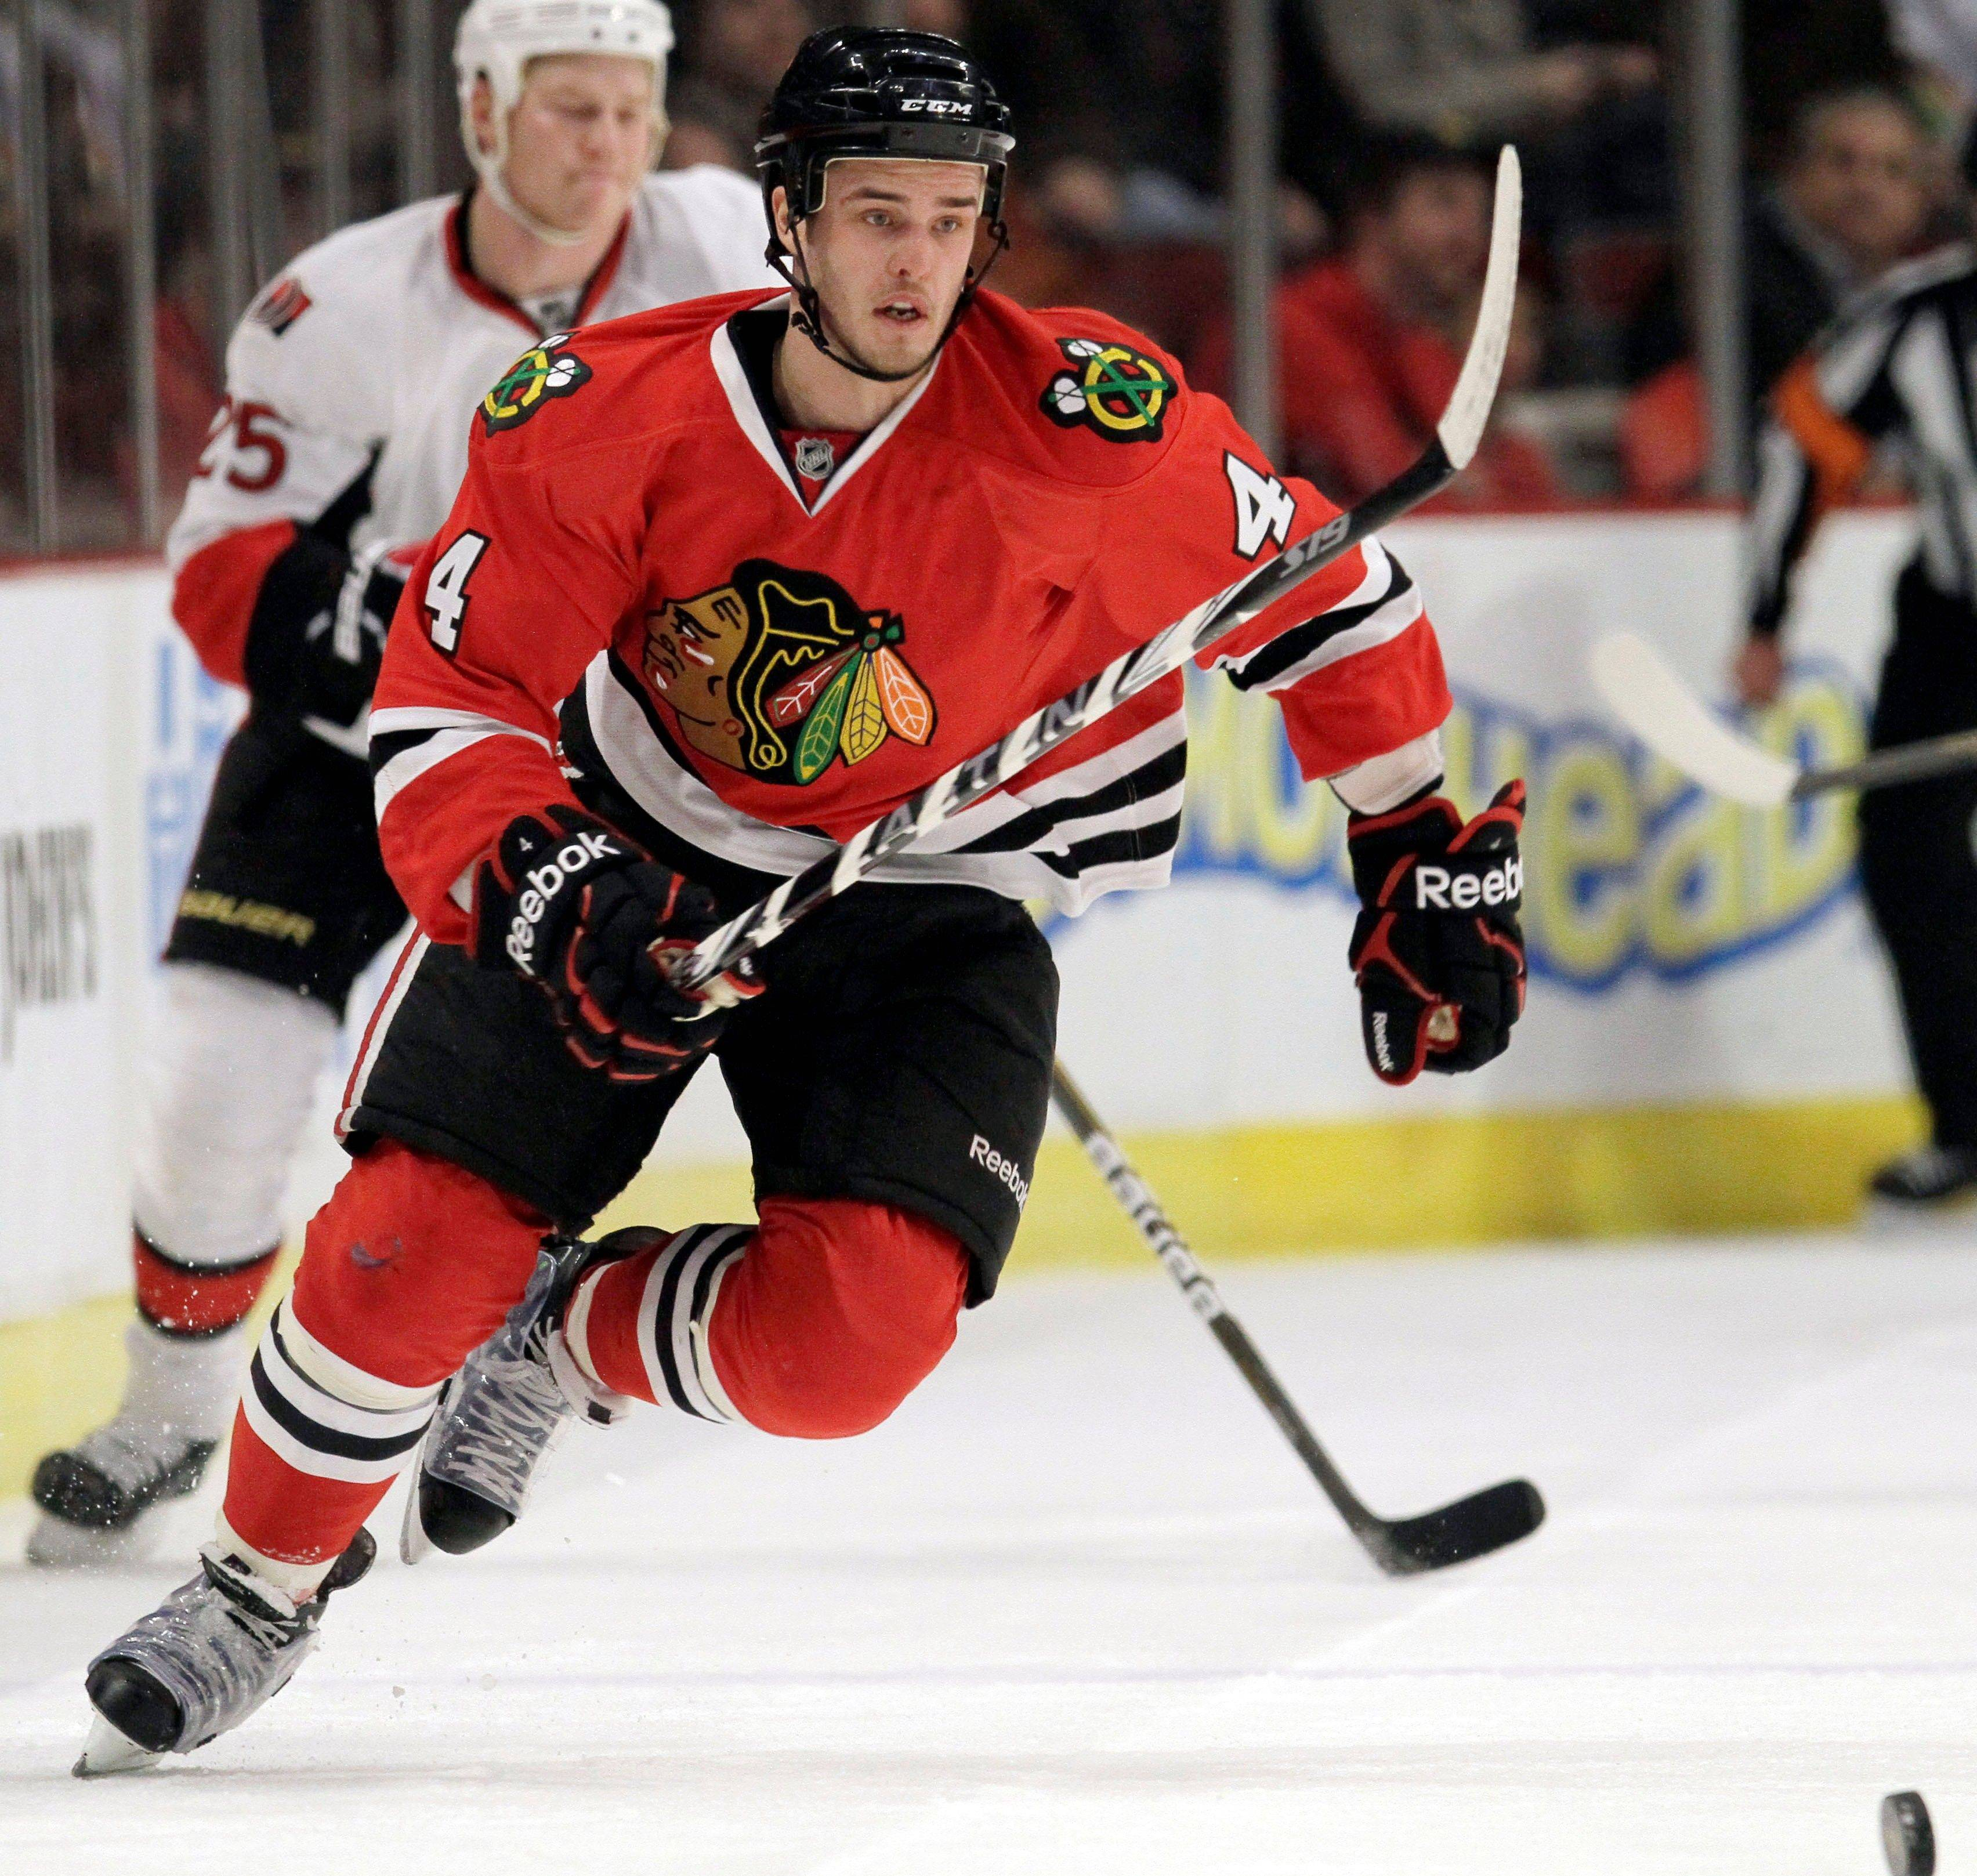 He regularly skips practices due to the beating his body takes in games, but Blackhawks defenseman Niklas Hjalmarsson continues to lead the team in blocked shots.